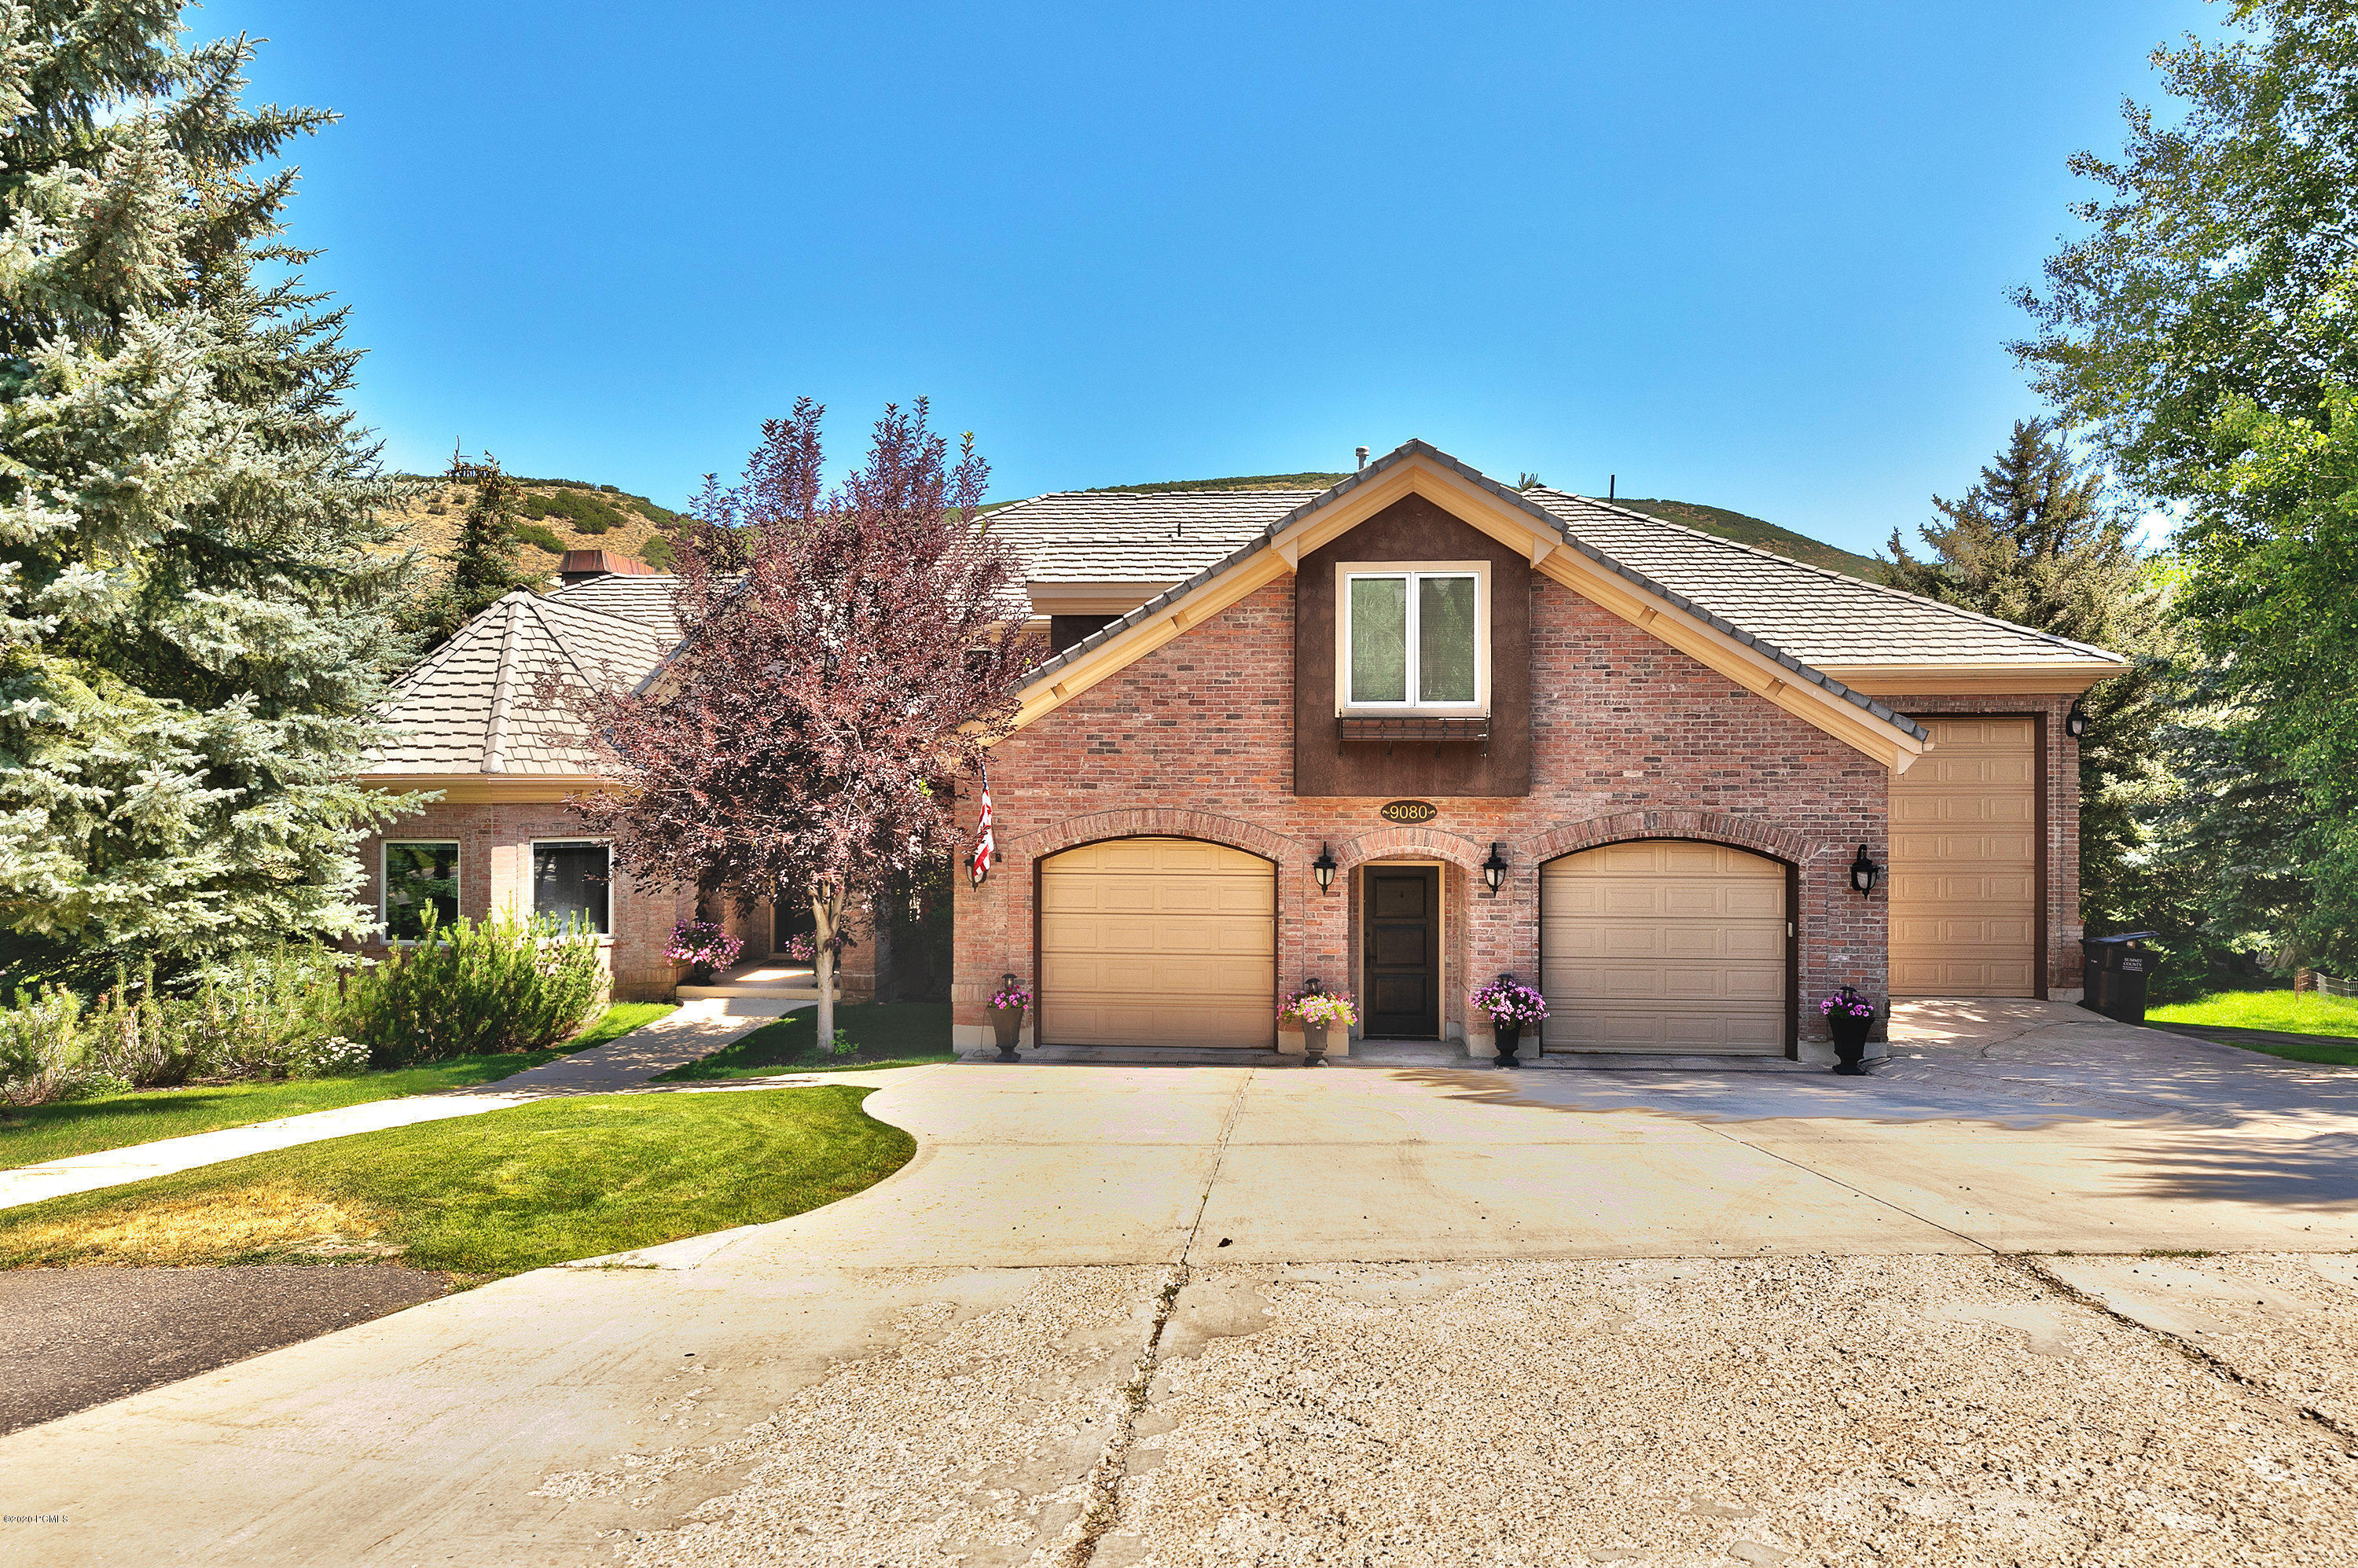 9080 Jeremy Road, Park City, Utah 84098, 5 Bedrooms Bedrooms, ,7 BathroomsBathrooms,Single Family,For Sale,Jeremy,12002952